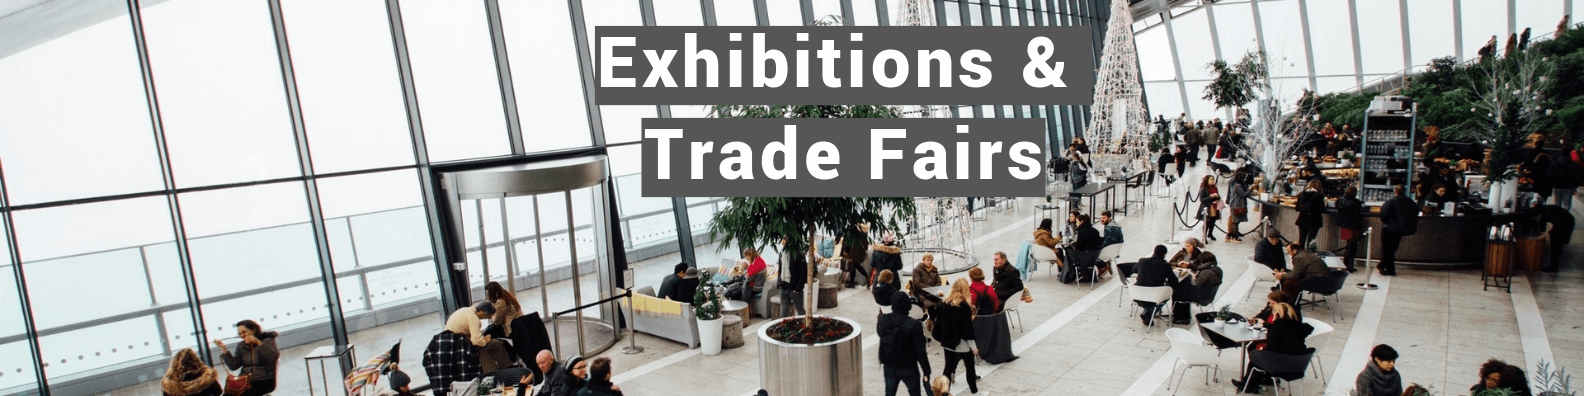 Chinese Interpreters for Exhibitions and Trade fairs